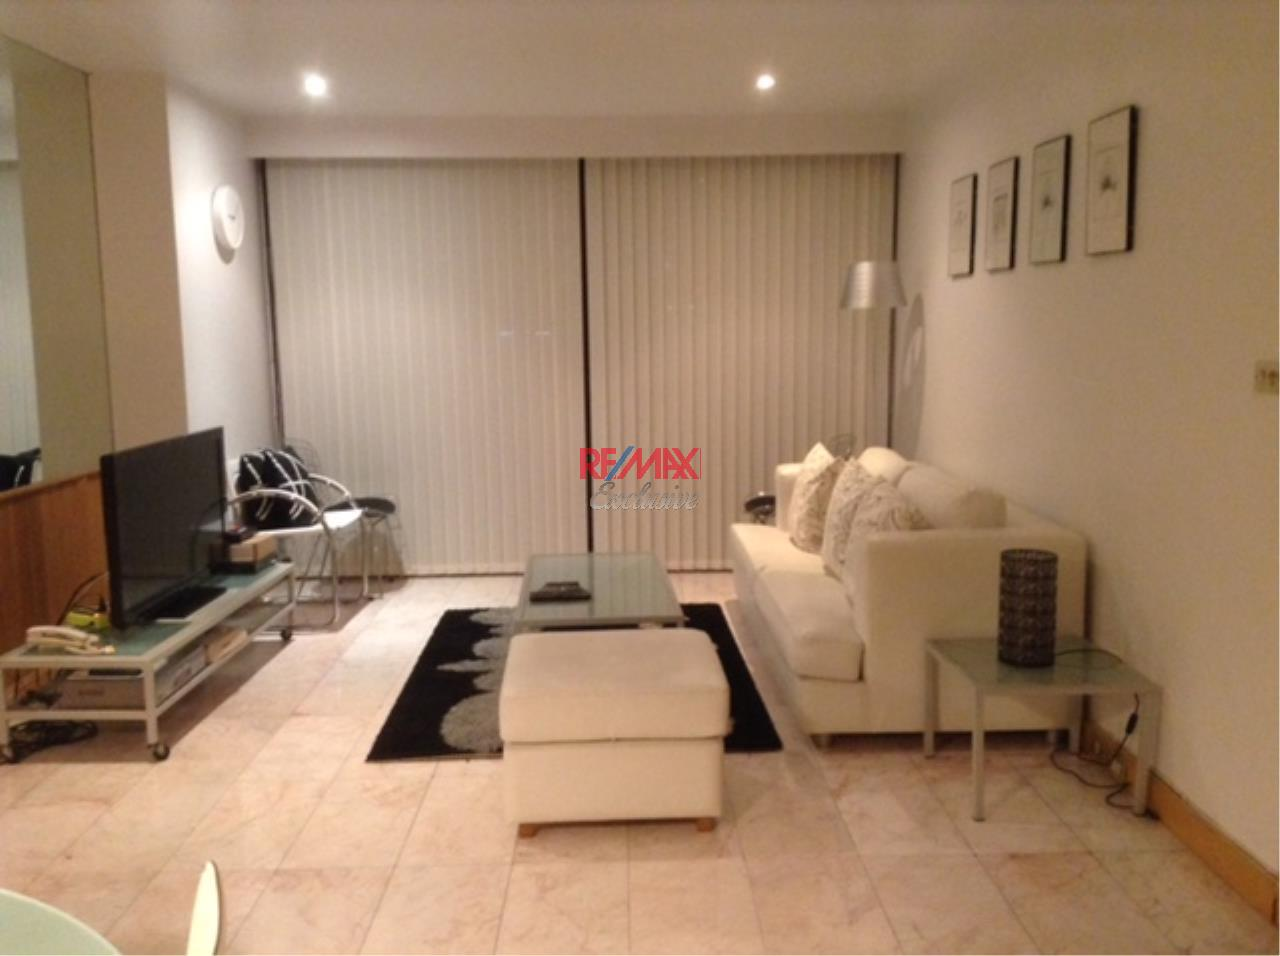 RE/MAX Exclusive Agency's Spacious 1 bedroom 86.5 sqm for sale or rent in Lake avenue 1